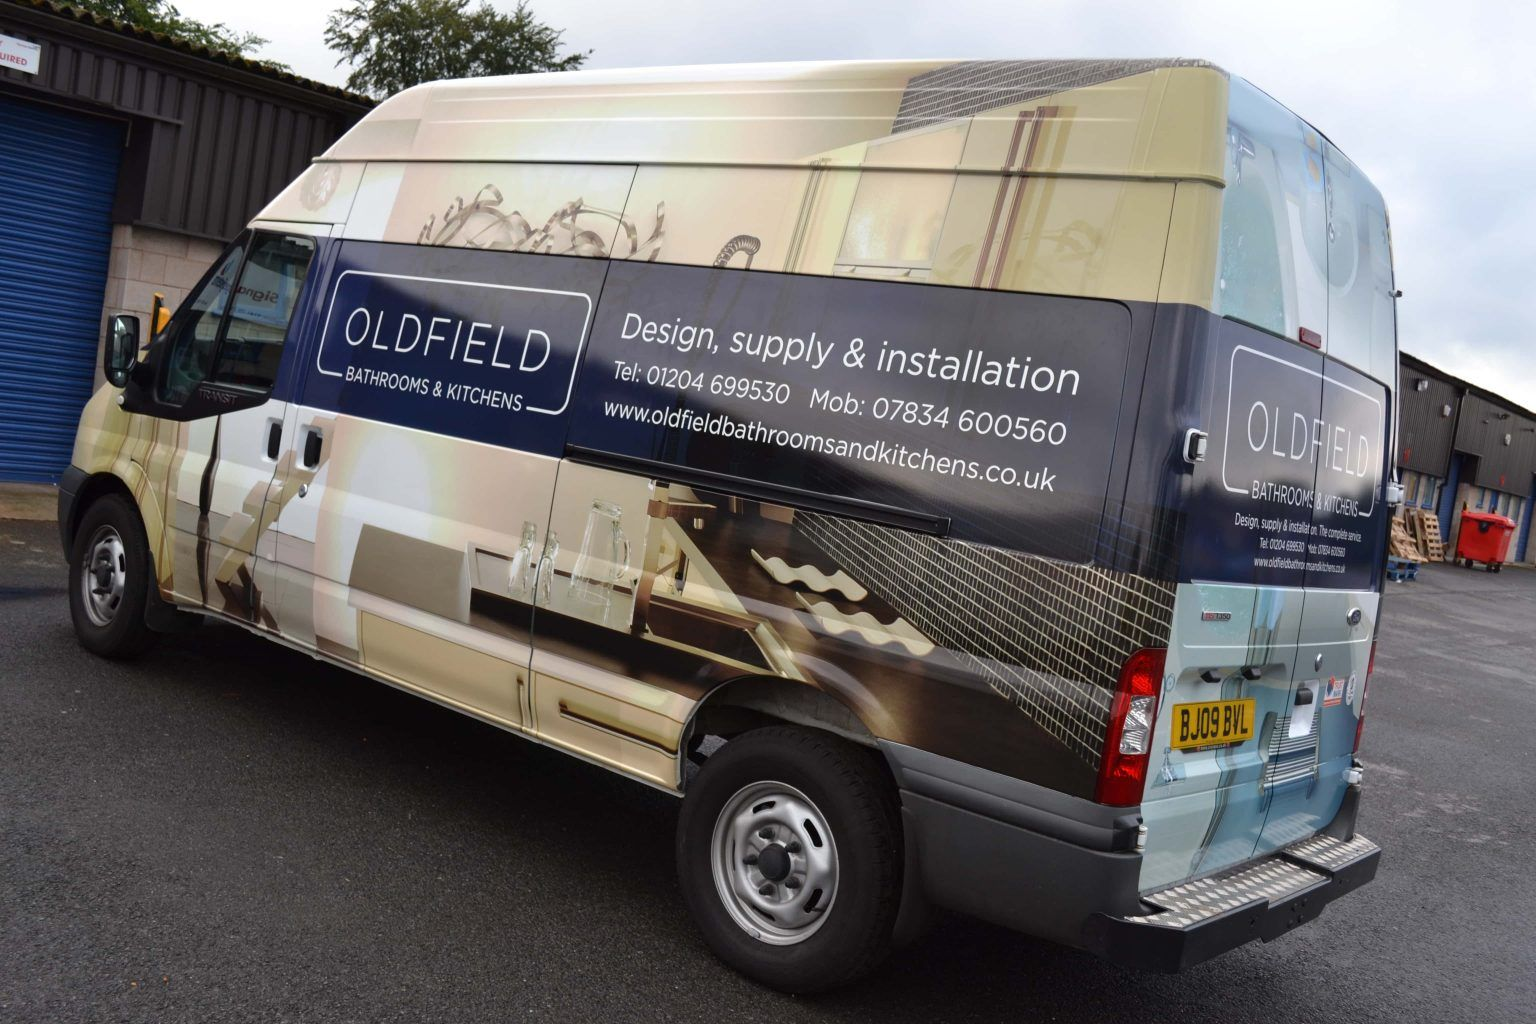 Oldfield Bathrooms and Kitchens Vehicle Wrap